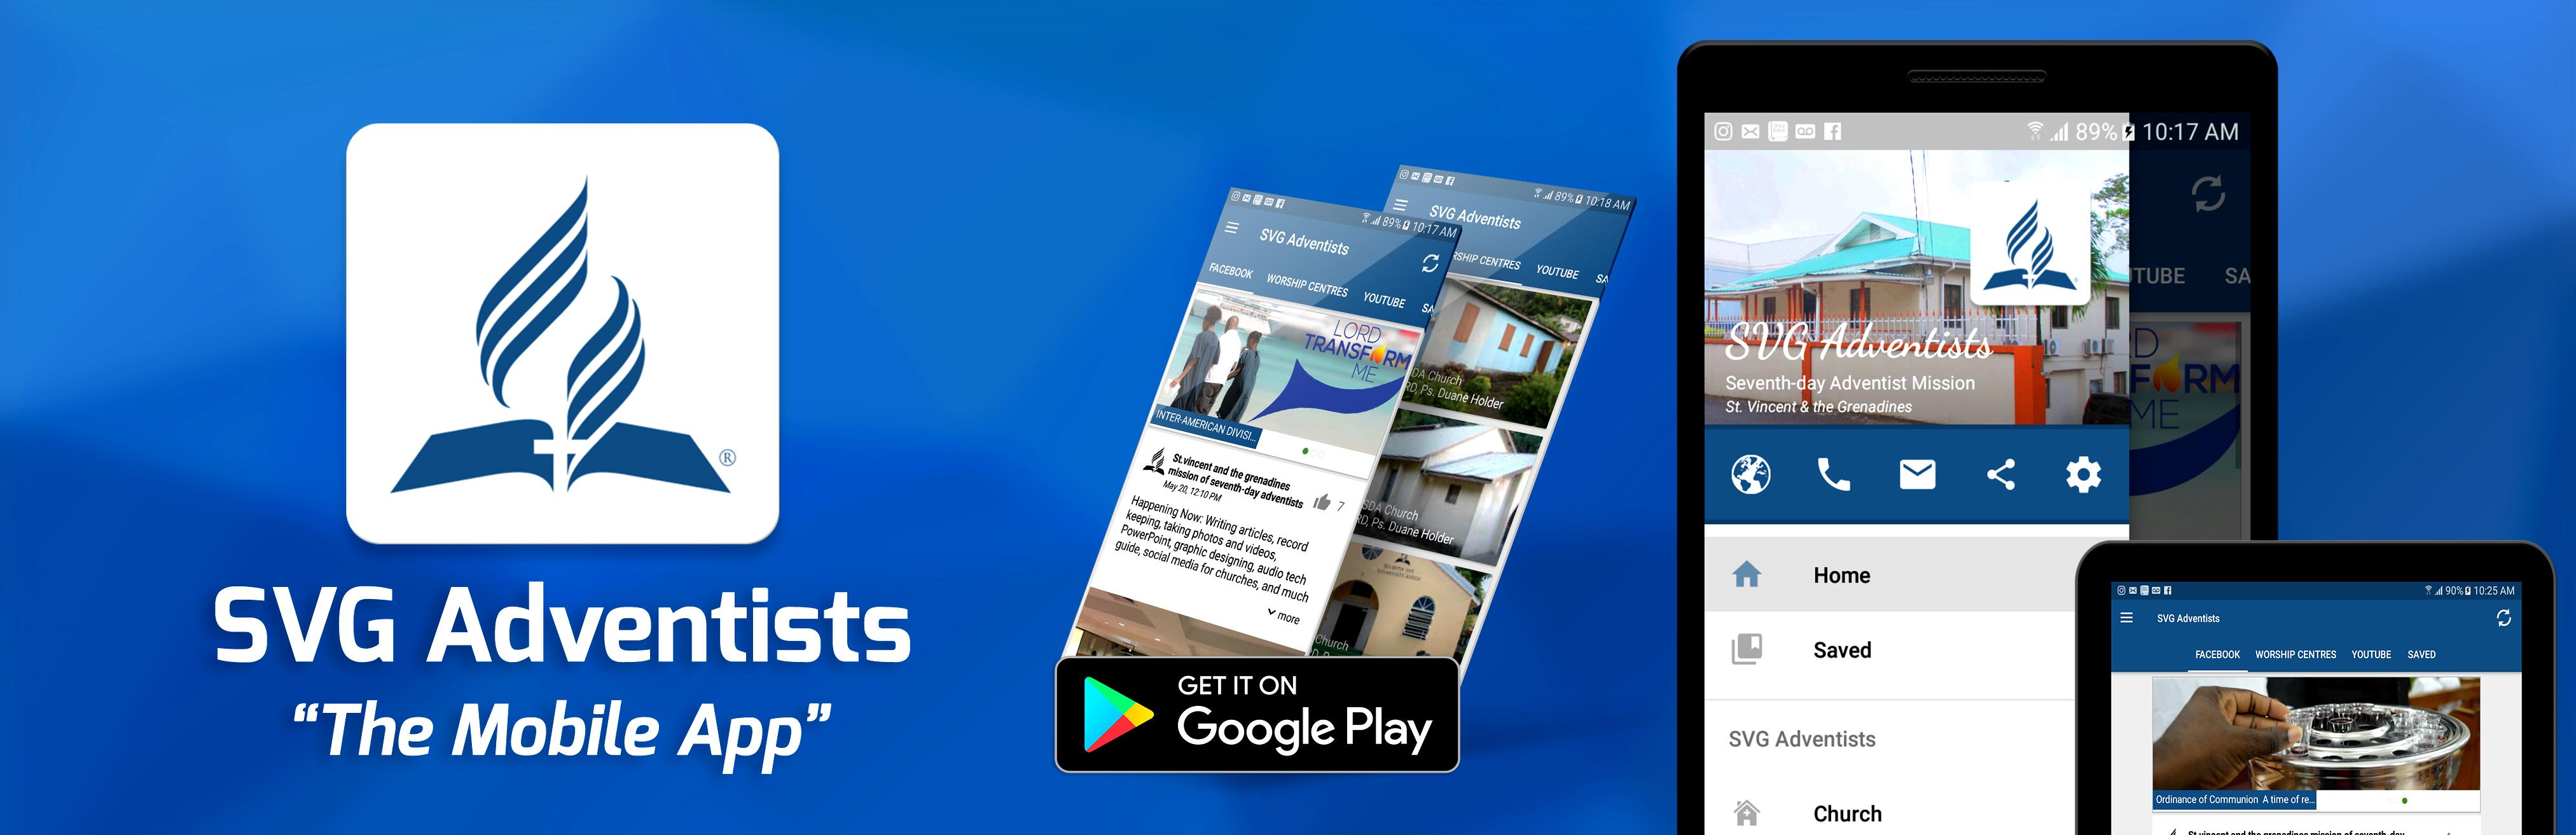 <h1>New Android App</h1><p>Download our New Android App in Google Store </p>